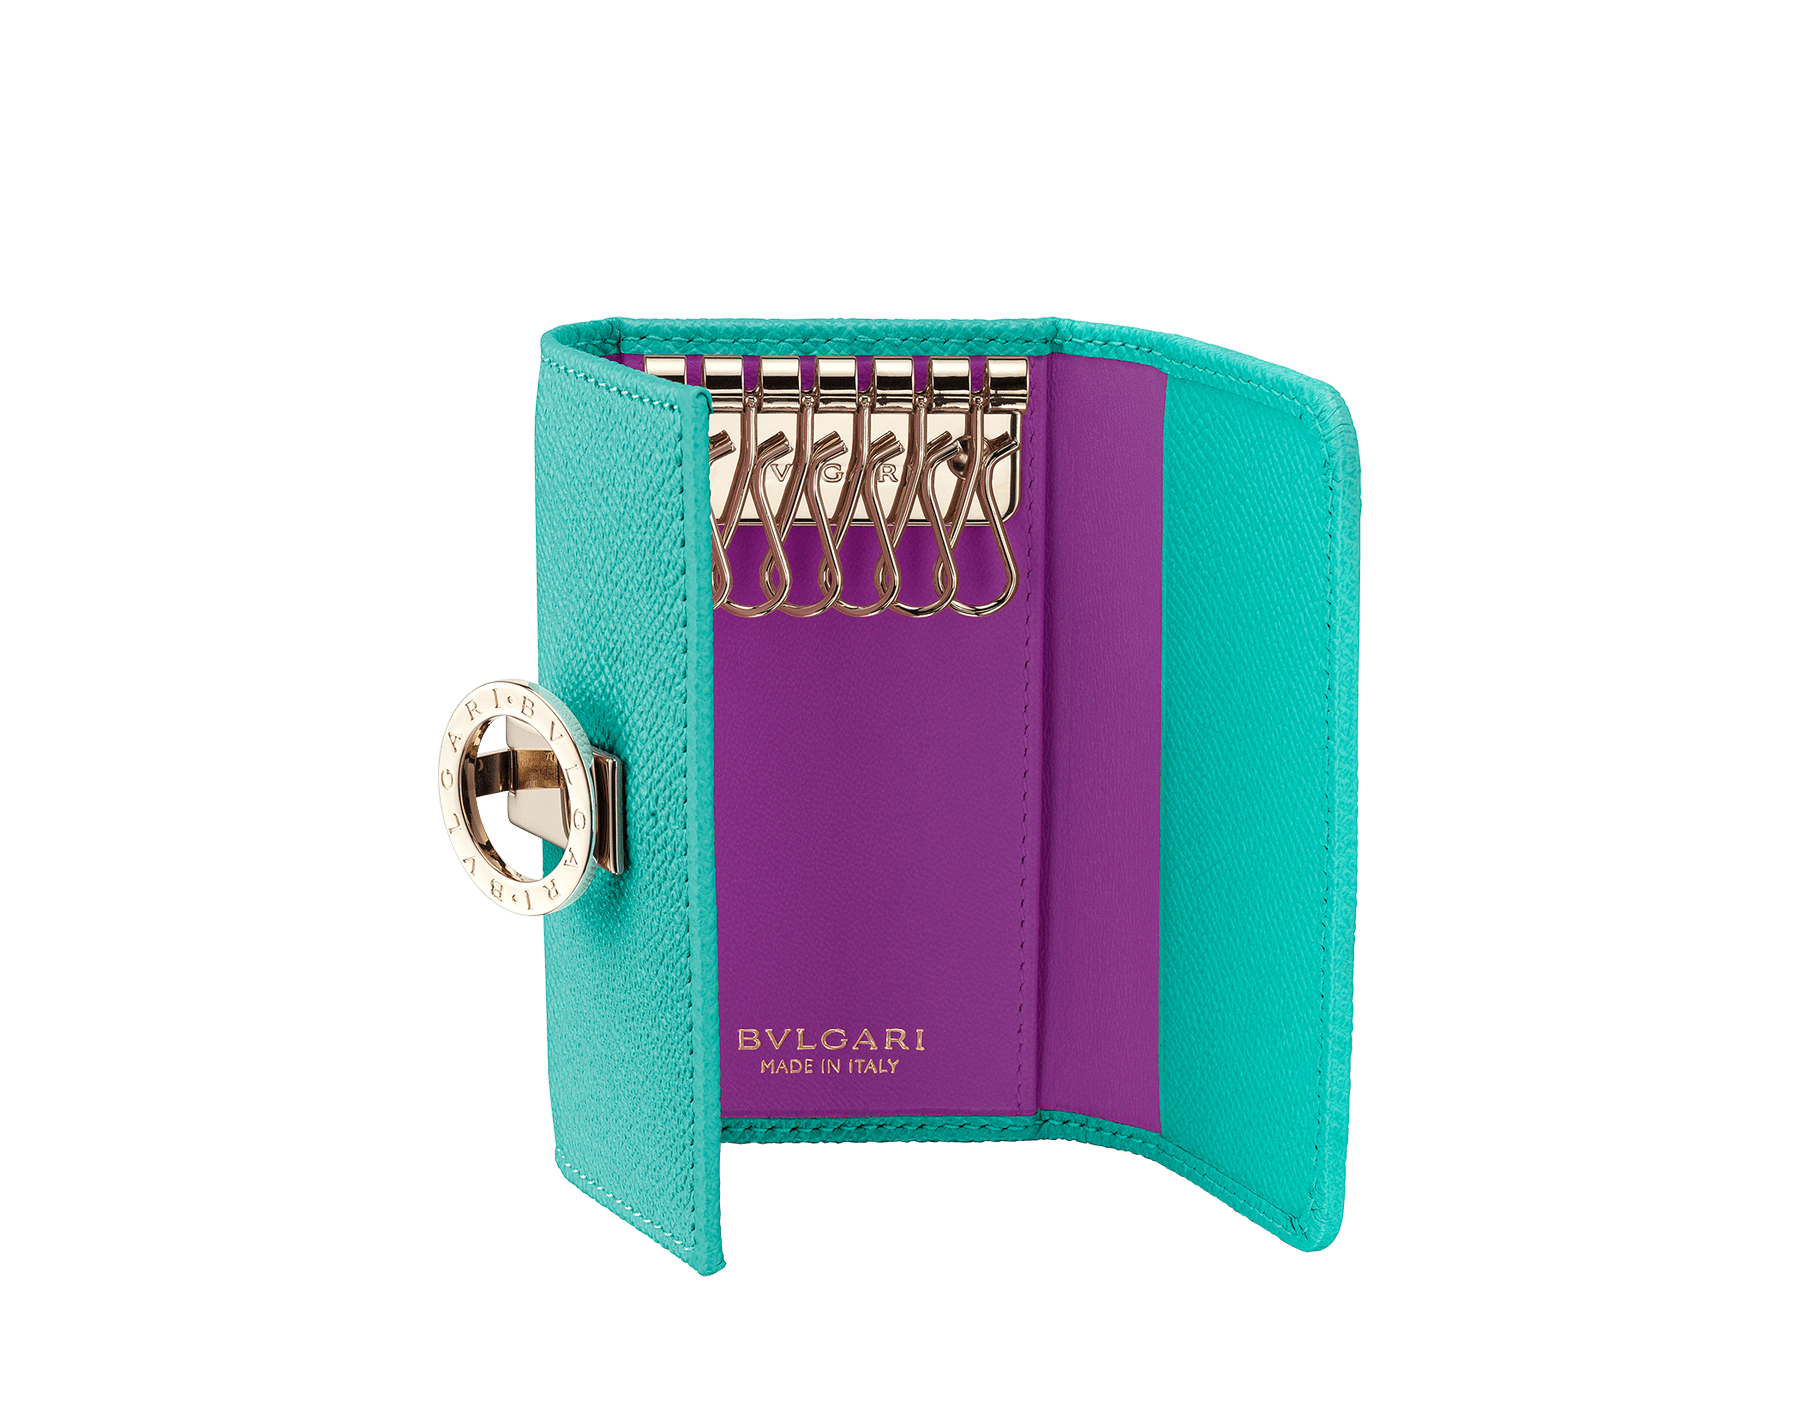 """""""BVLGARI BVLGARI"""" small key holder in Capri turquoise bright grain calf leather and black nappa leather. Iconic logo clip closure in light gold plated brass. 579-KEYHOLDER-Sb image 2"""